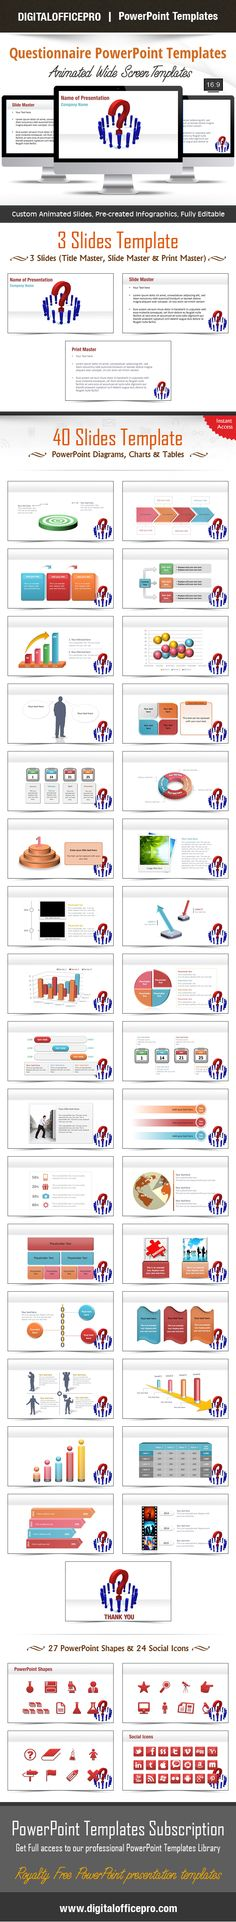 Cute pet powerpoint template backgrounds download shape and impress and engage your audience with questionnaire powerpoint template and questionnaire powerpoint backgrounds from digitalofficepro toneelgroepblik Images